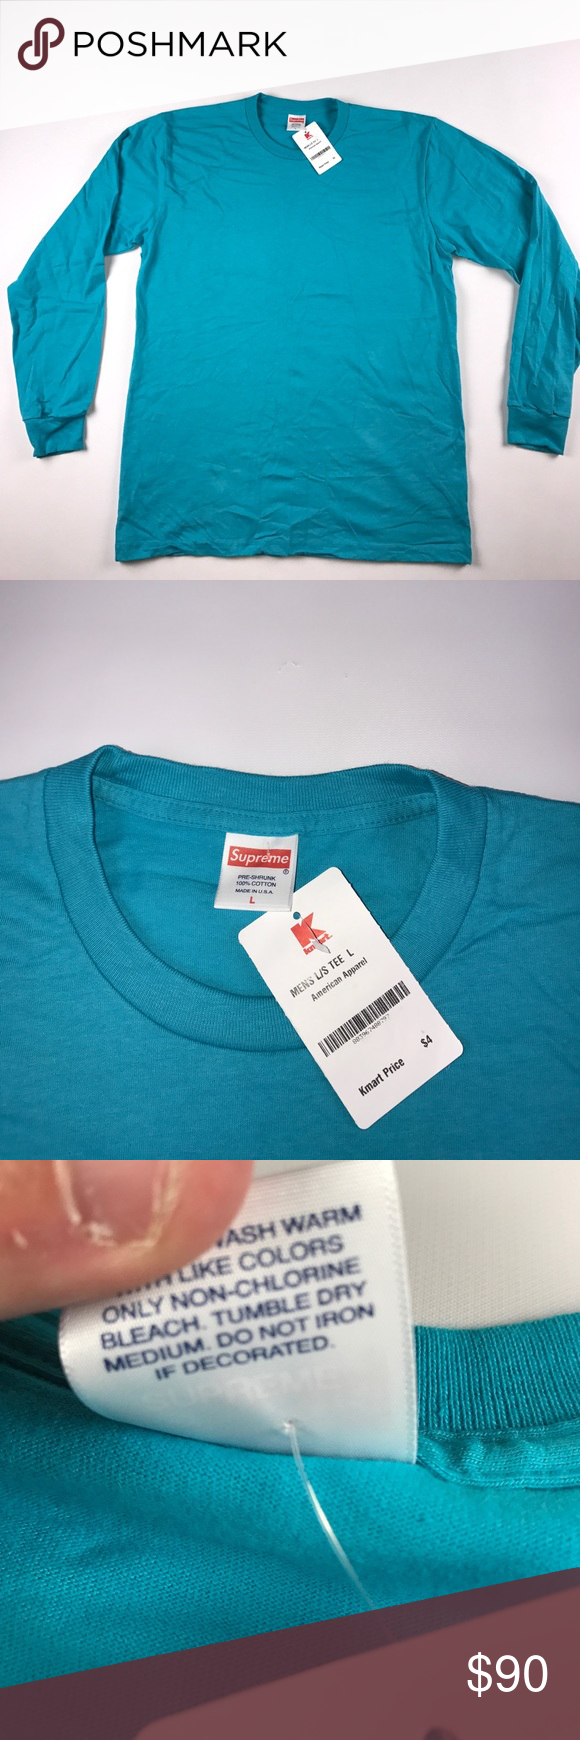 newest 75364 00e08 New Large Supreme Kmart Long Sleeve Shirt Blue New with tags ...